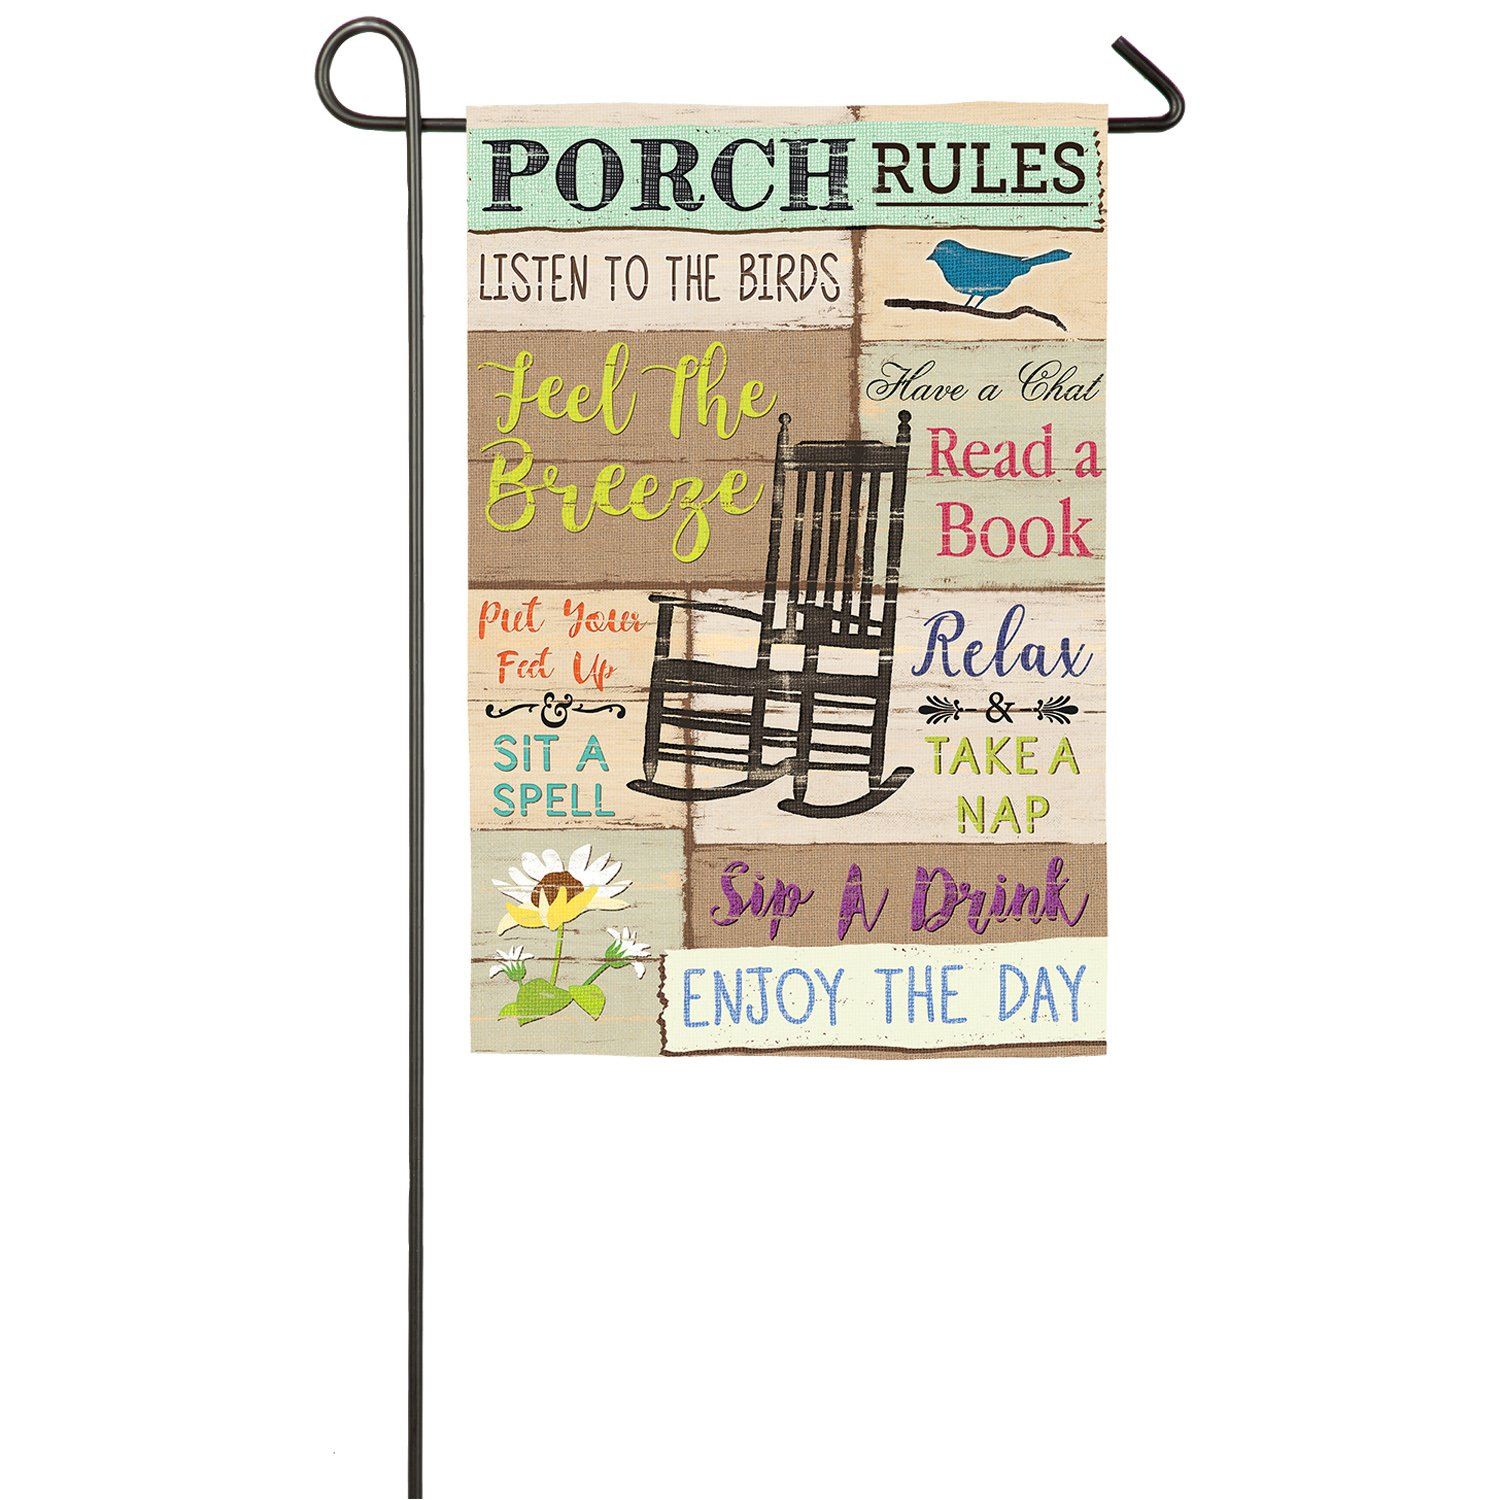 Evergreen Porch Rules Outdoor Safe Double-Sided Suede Garden Flag, 12.5 x 18 inches